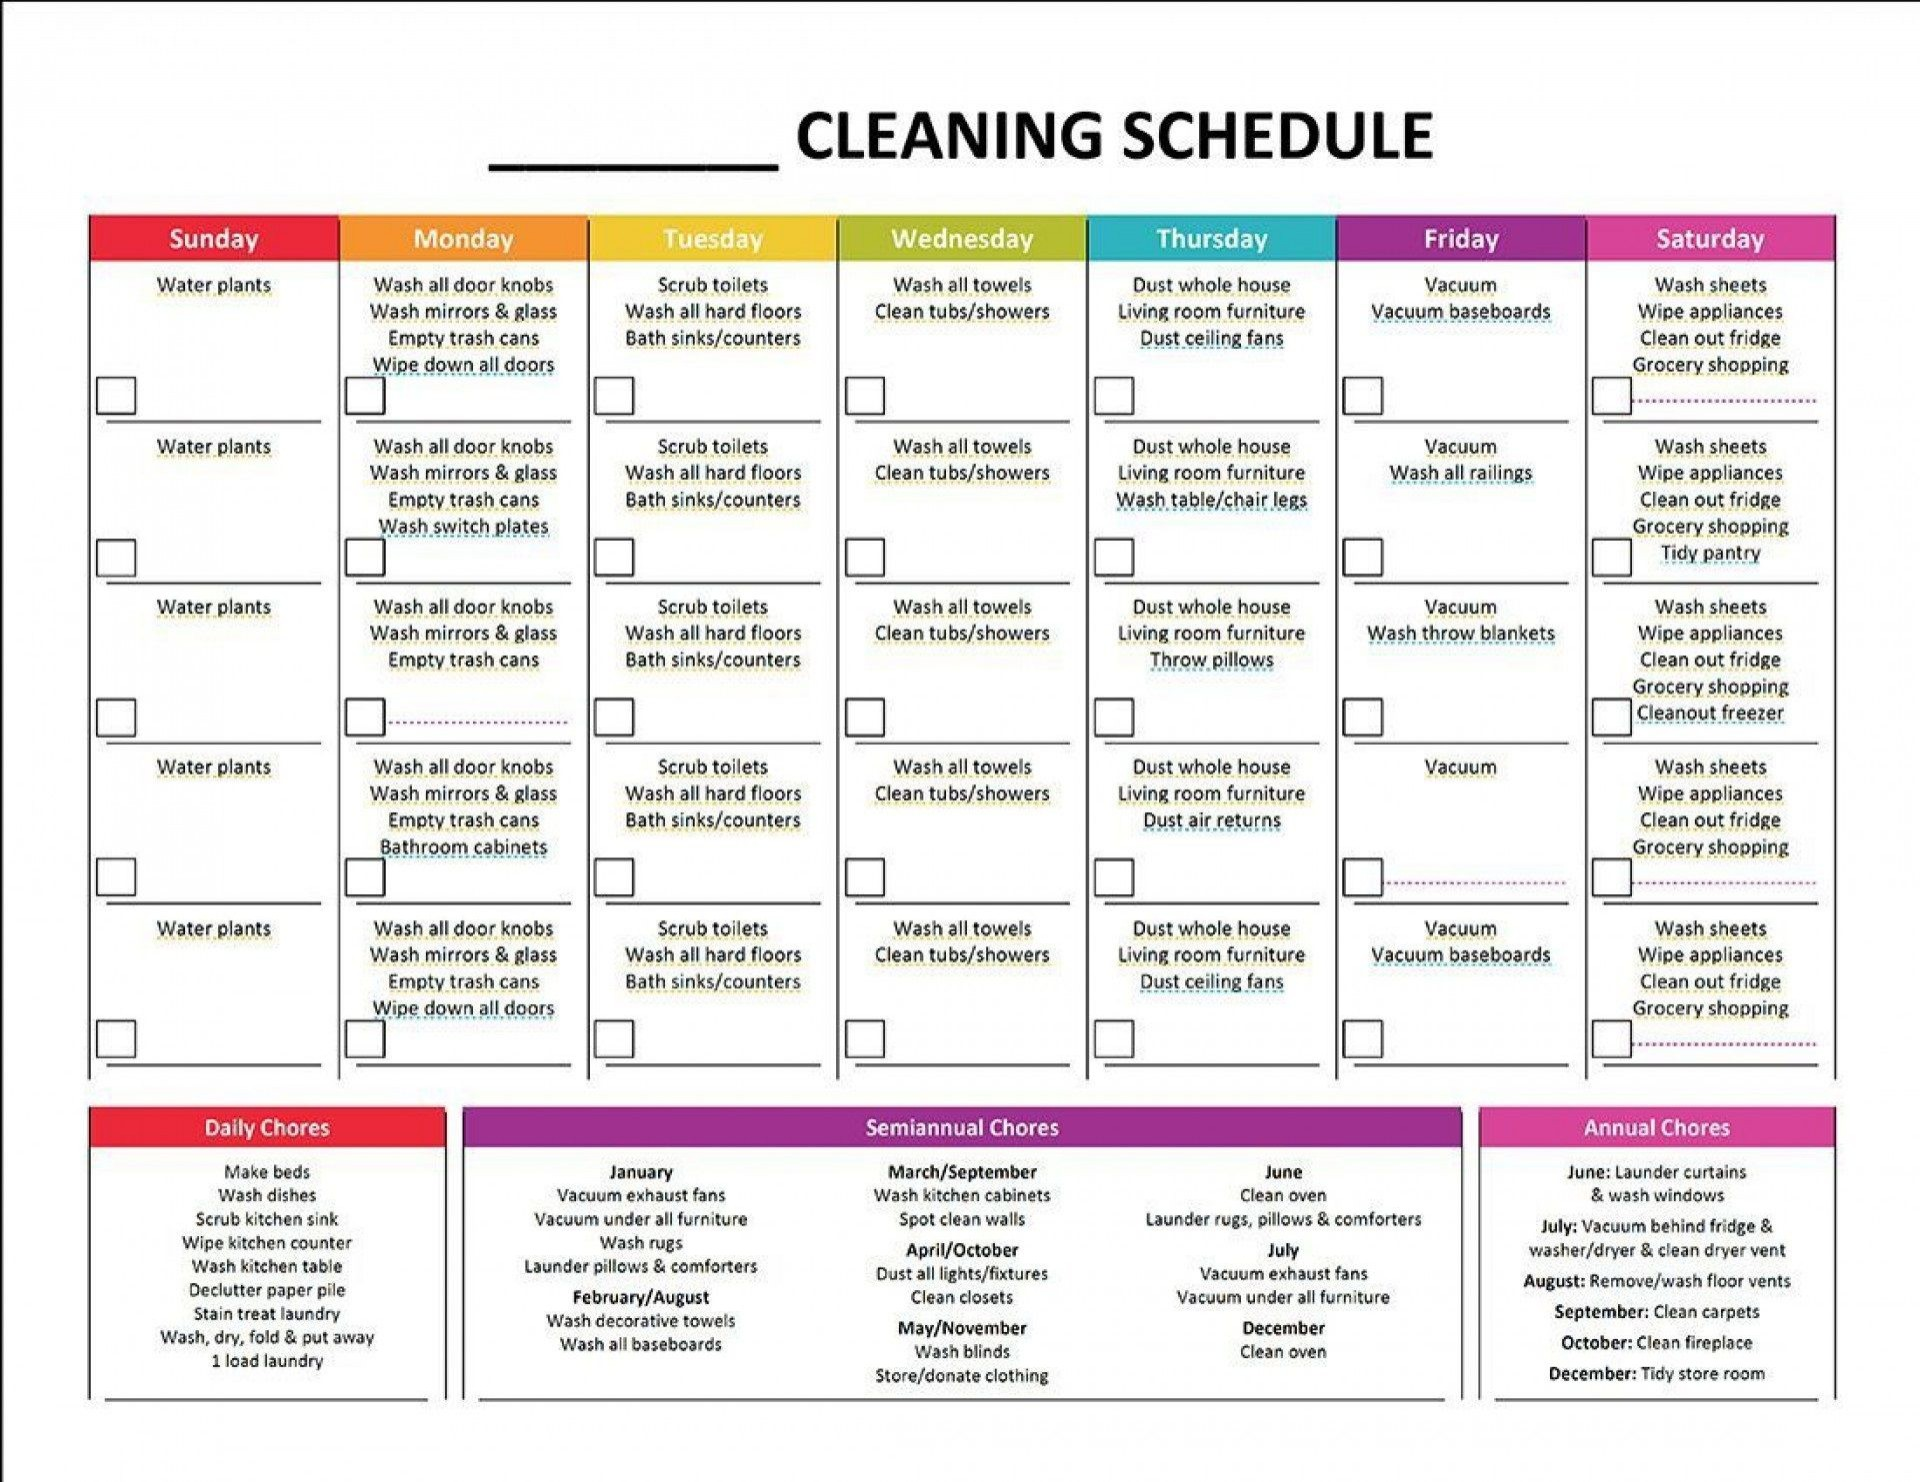 002 Stunning House Cleaning Schedule Template Excel Sample 1920